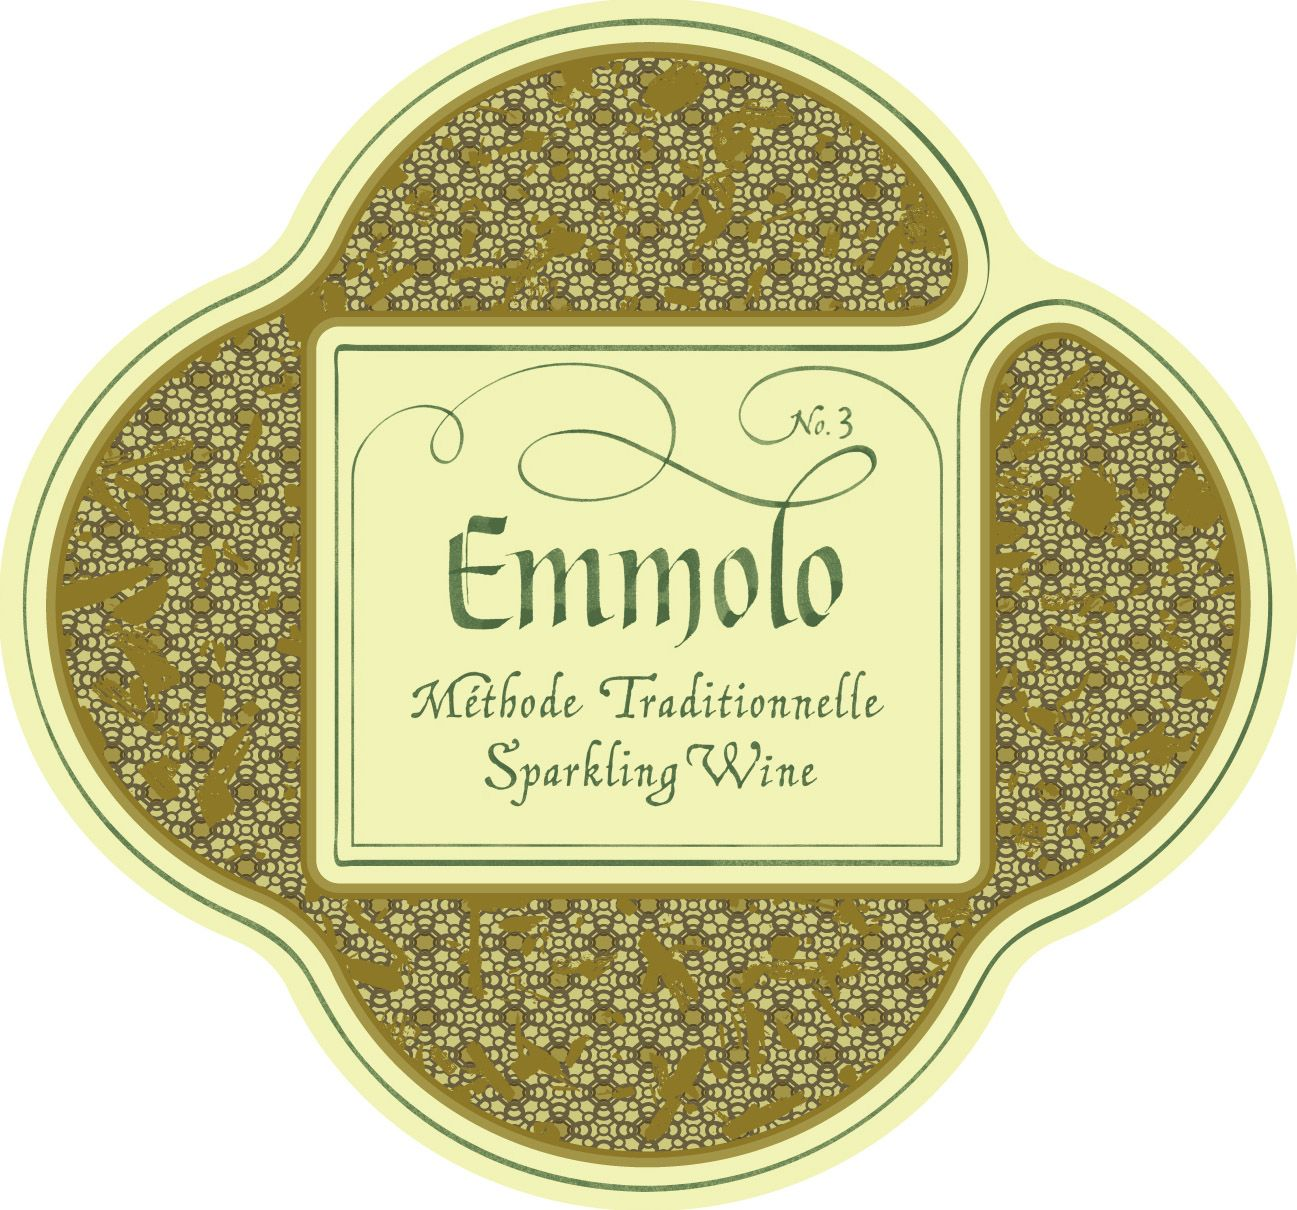 Emmolo Methode Traditionelle Sparkling Wine No. 3  Front Label